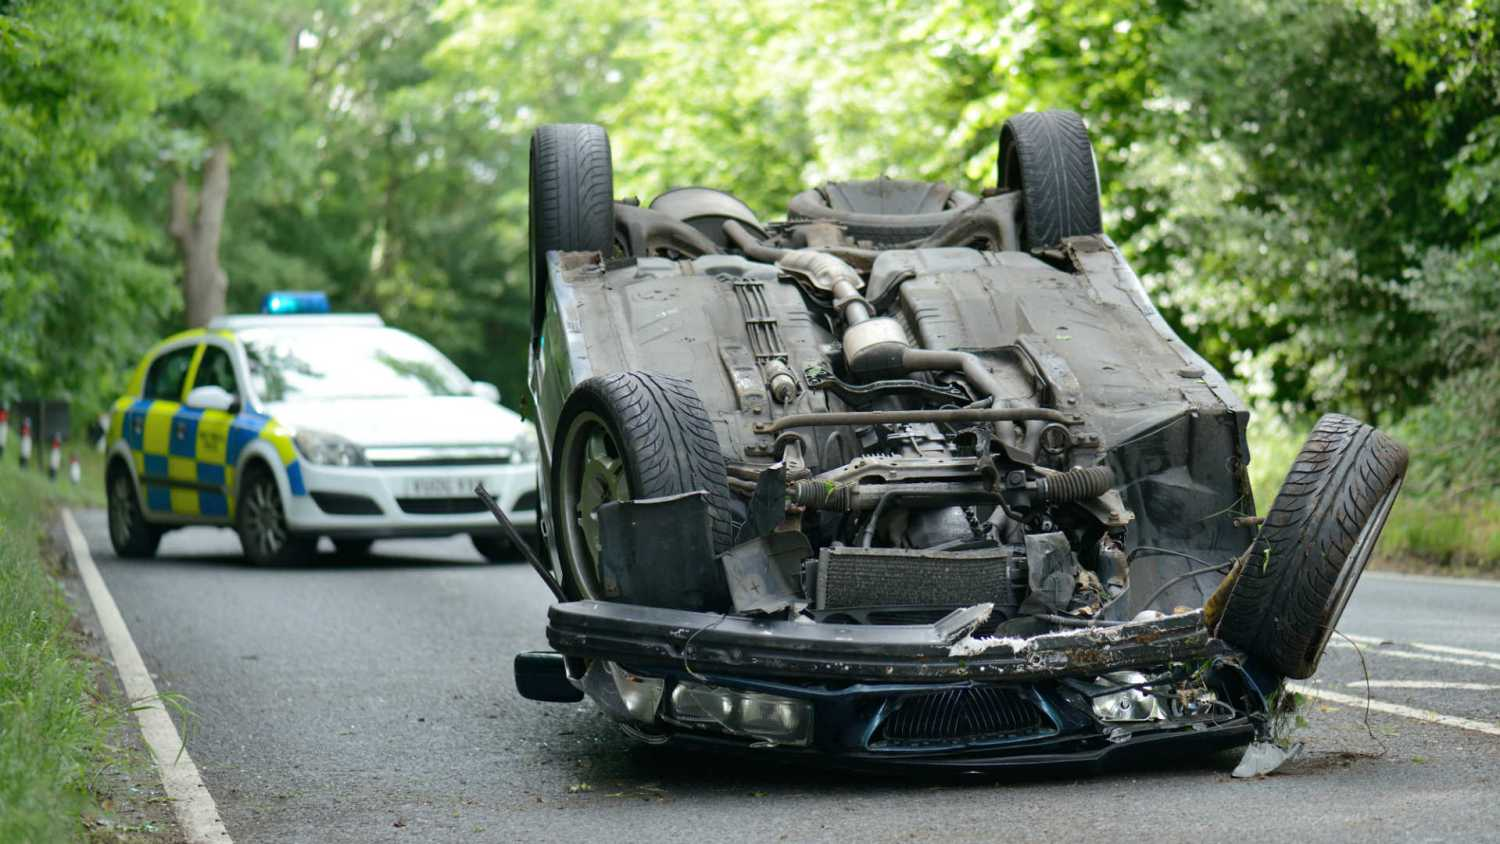 Crash as a result of drug-driving